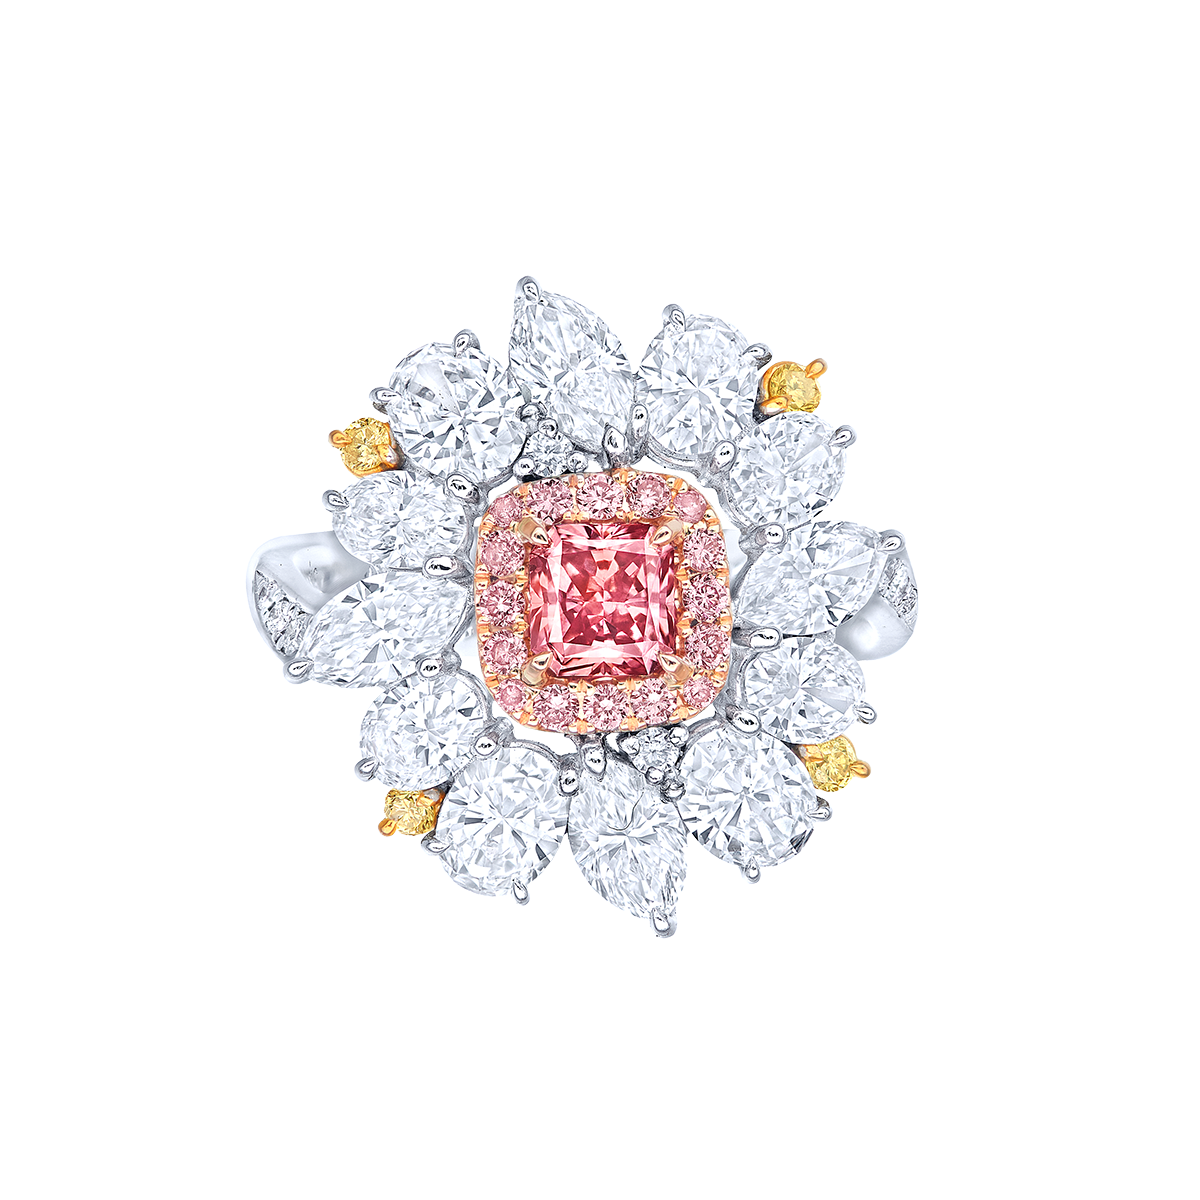 阿蓋爾粉鑽鑽戒 0.48克拉